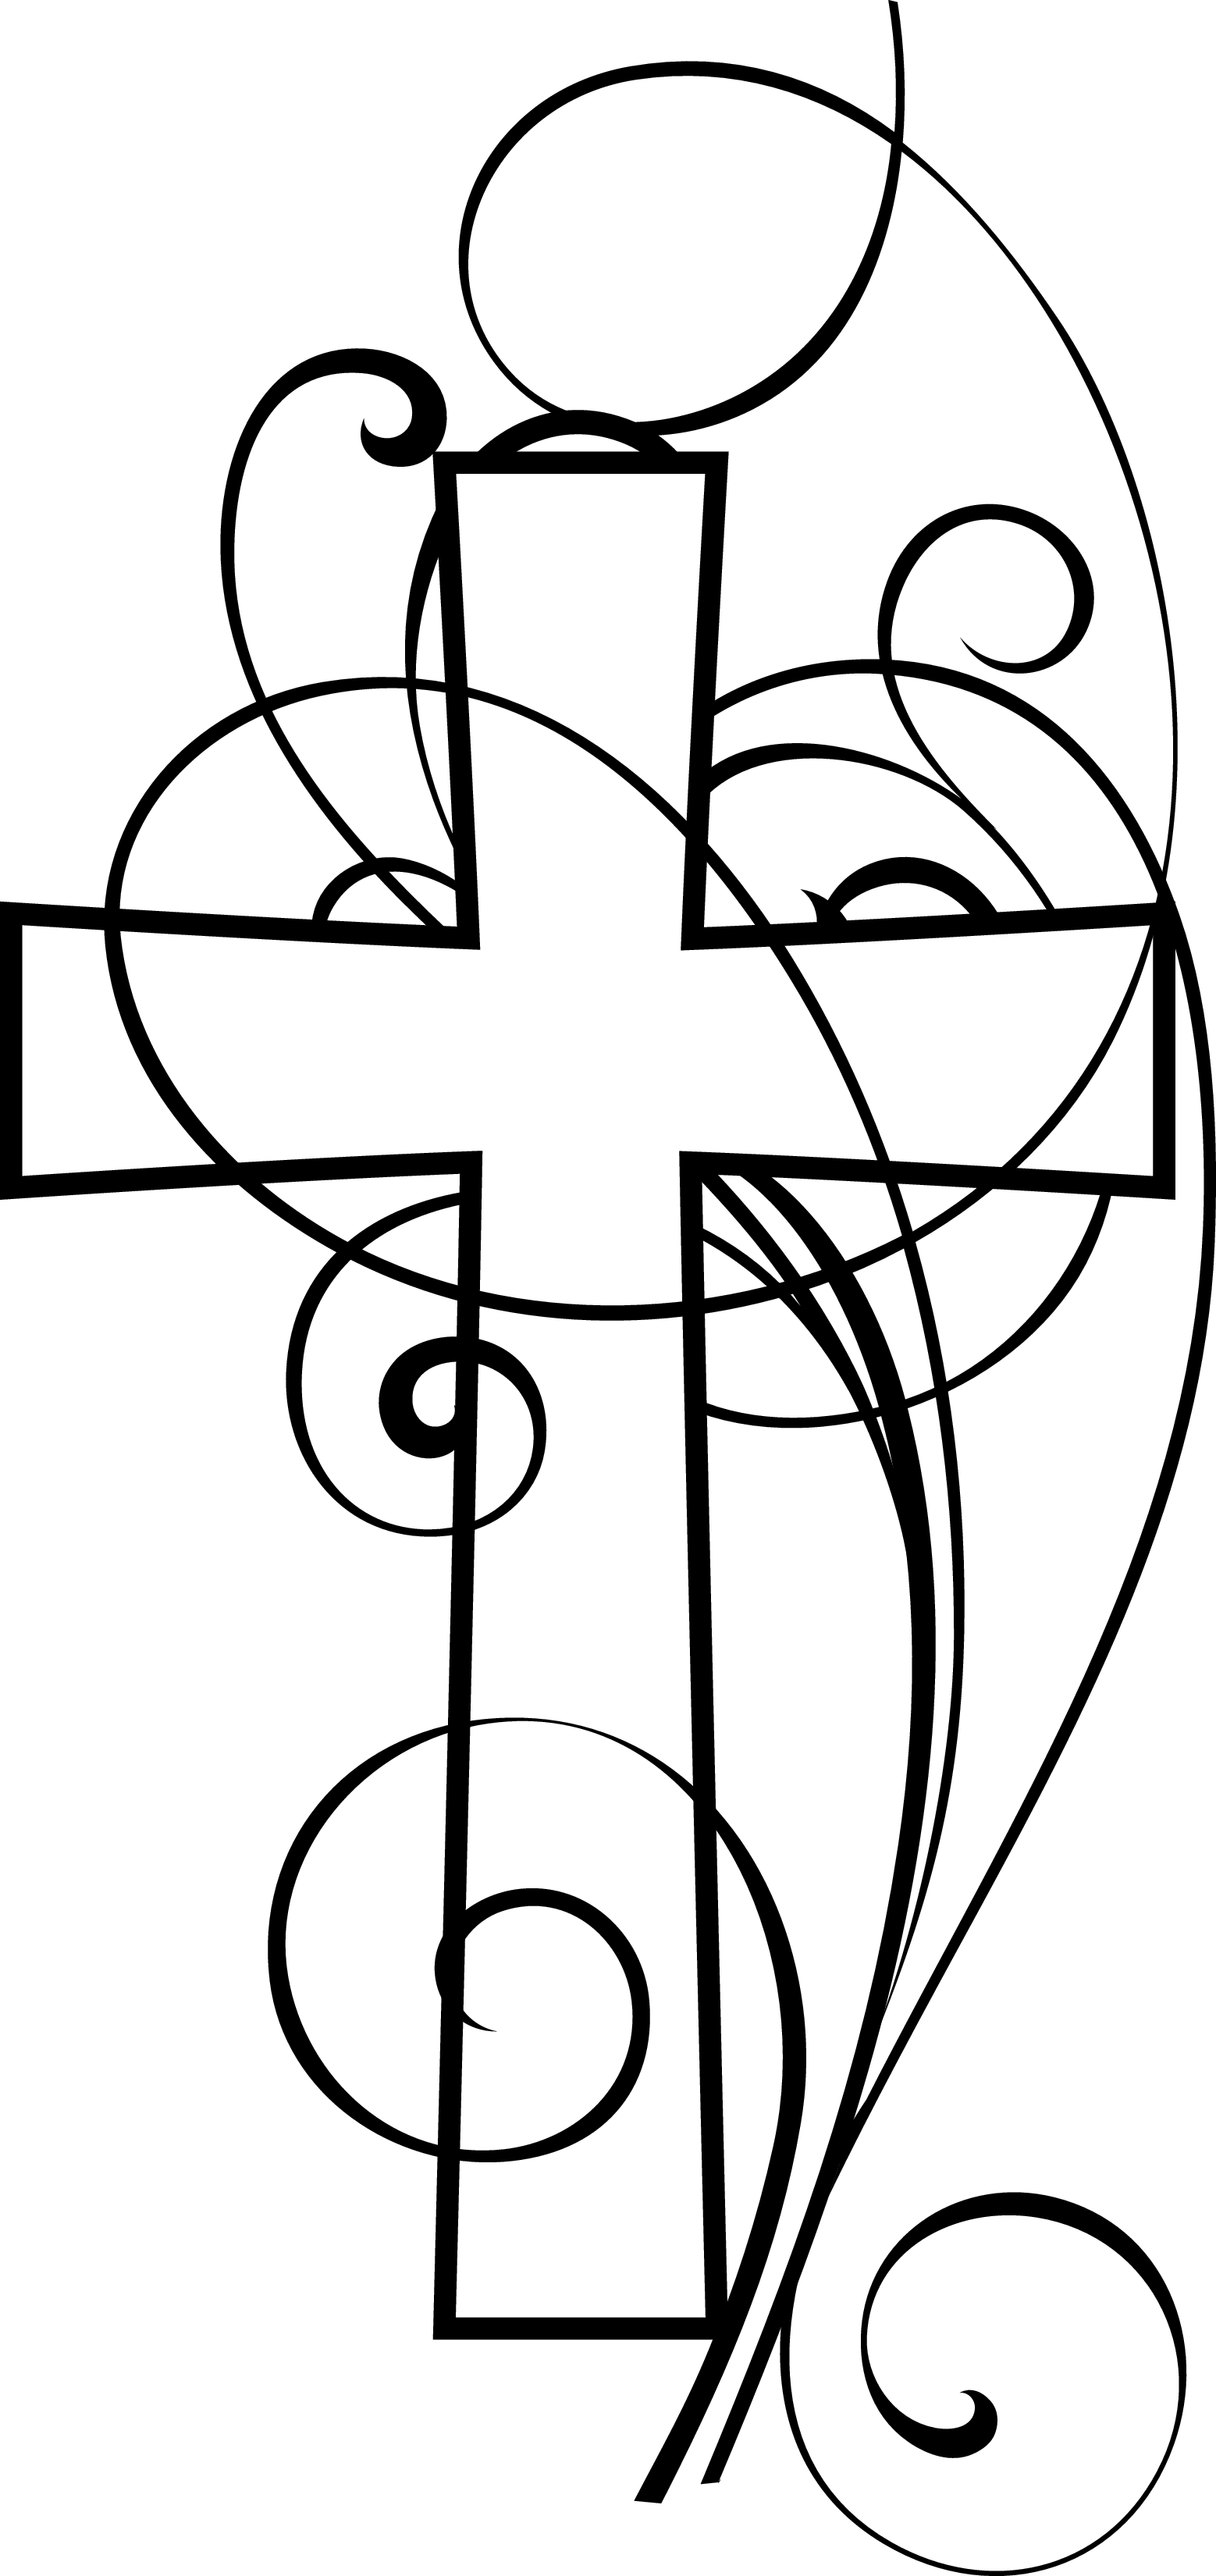 Religious Wedding Clipart - ClipArt Best